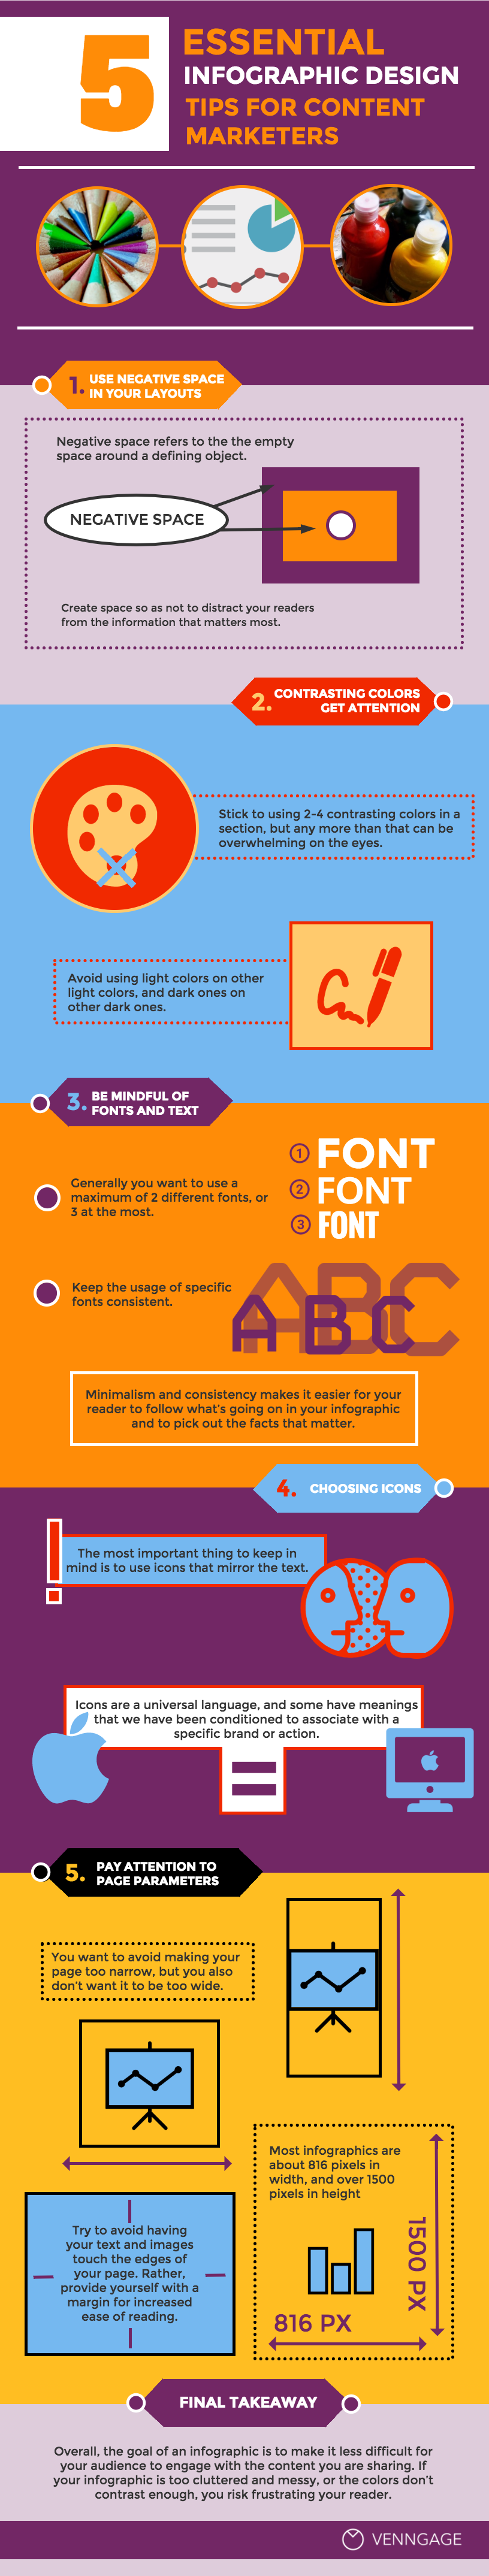 Infographic: 5 Essential Infographic Design Tips For Content Marketers   Venngage